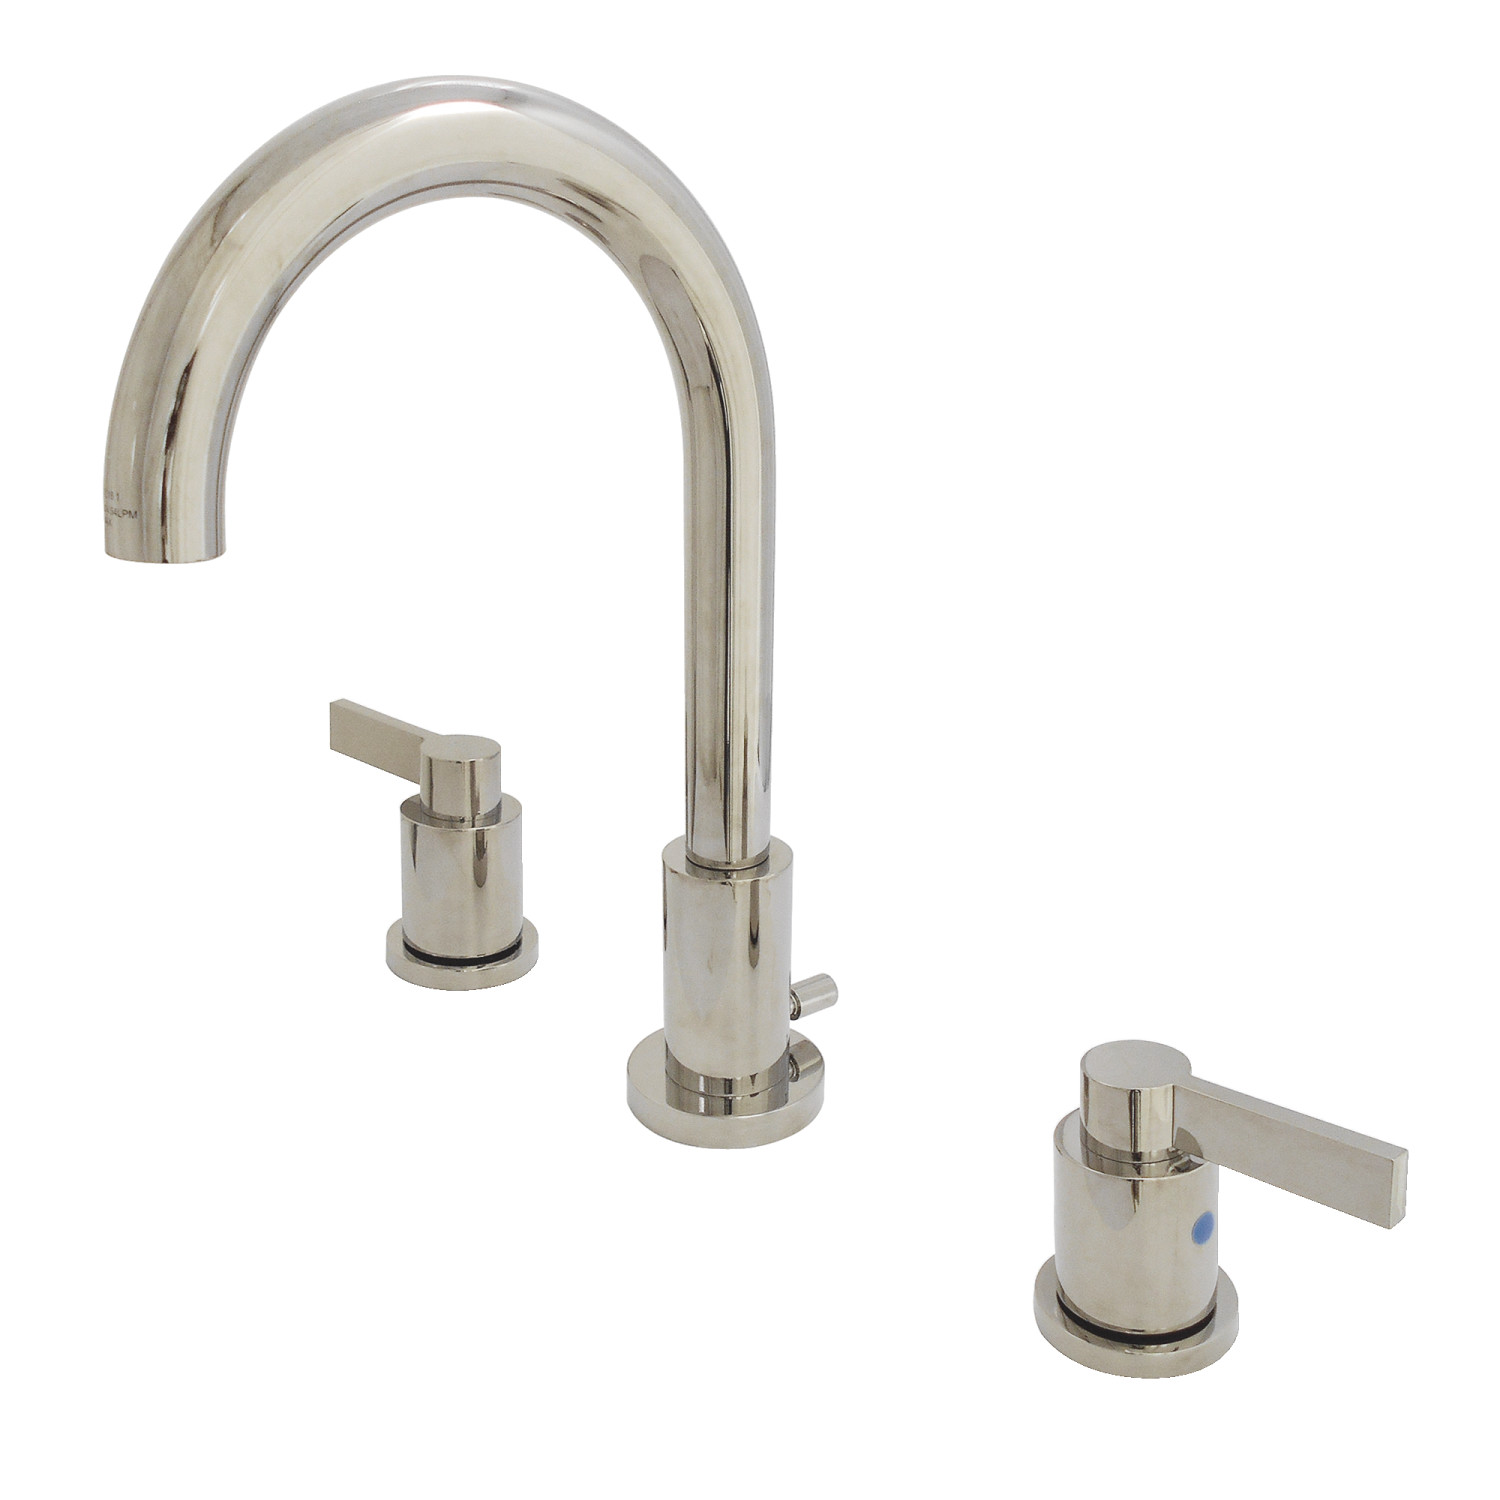 Fauceture FSC8929NDL 8-Inch Widespread Lavatory Faucet, Polished ...